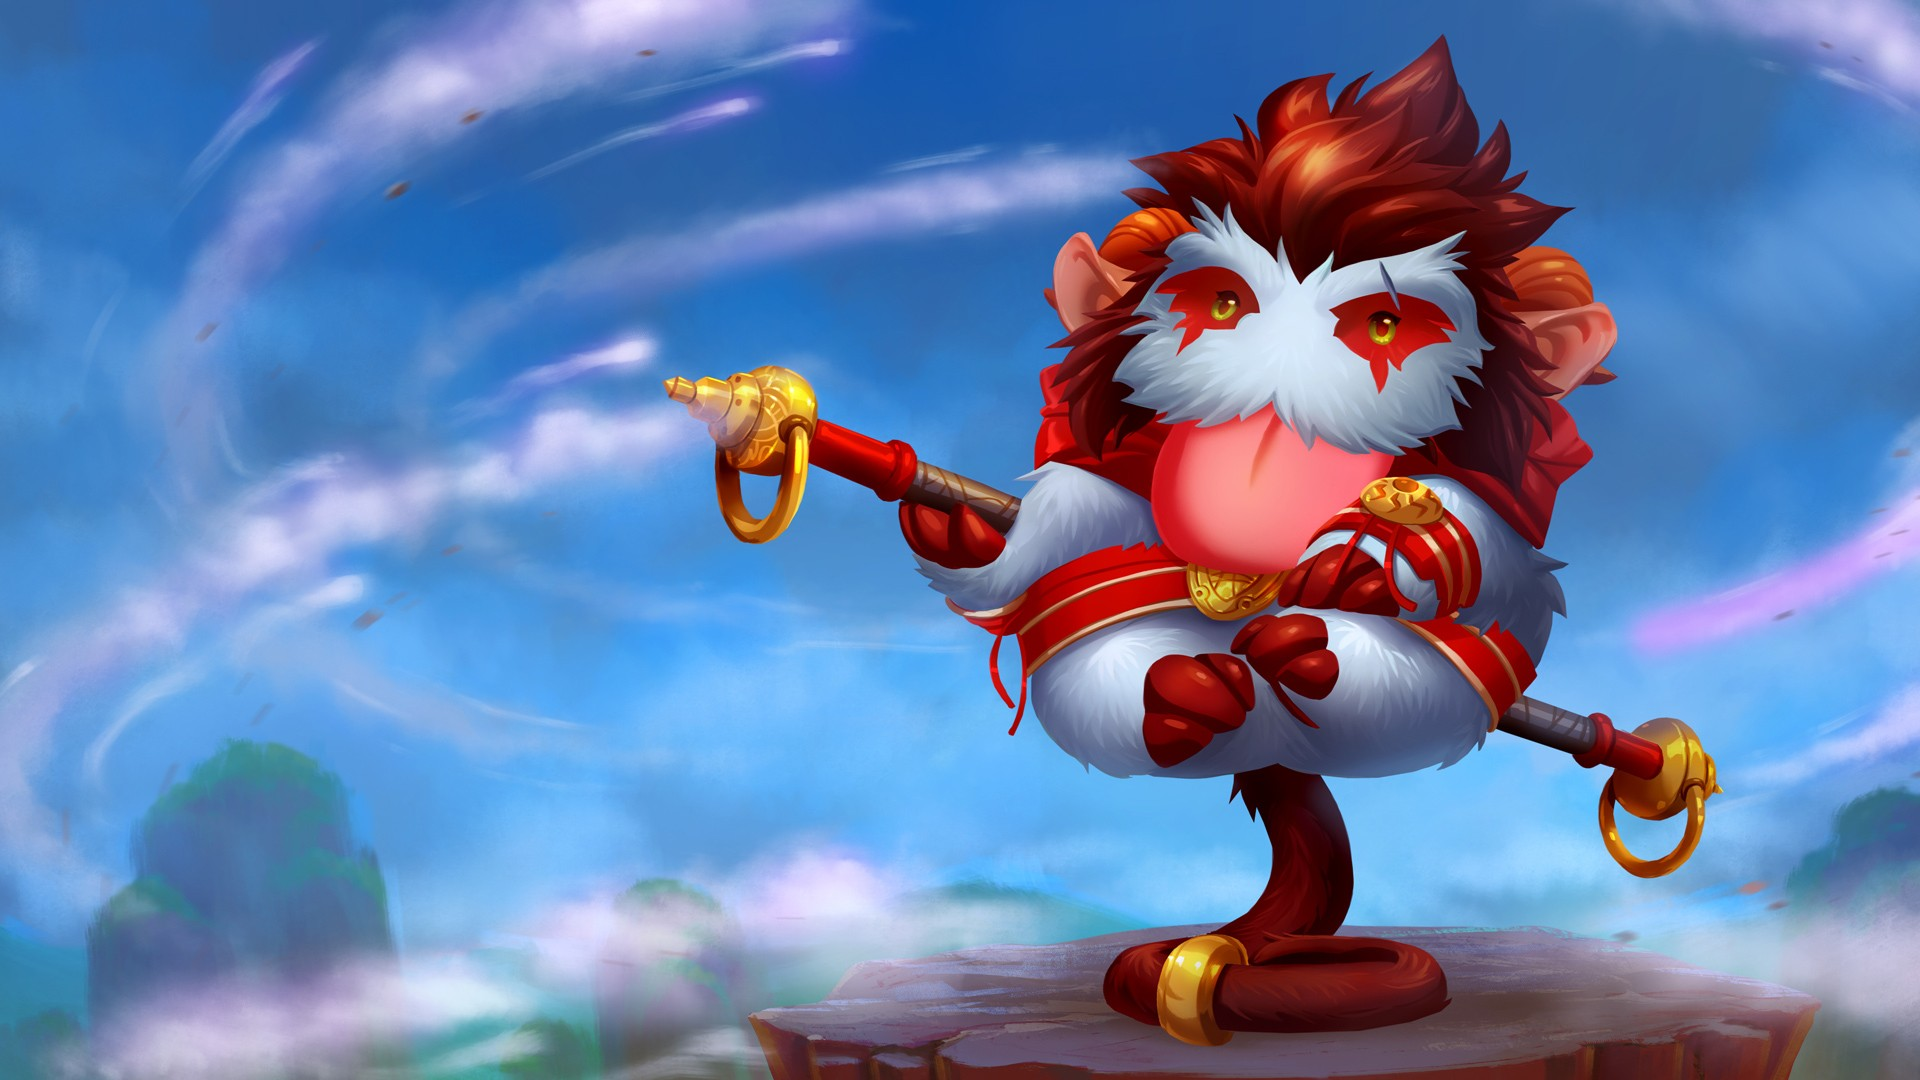 Wukong Poro wallpaper